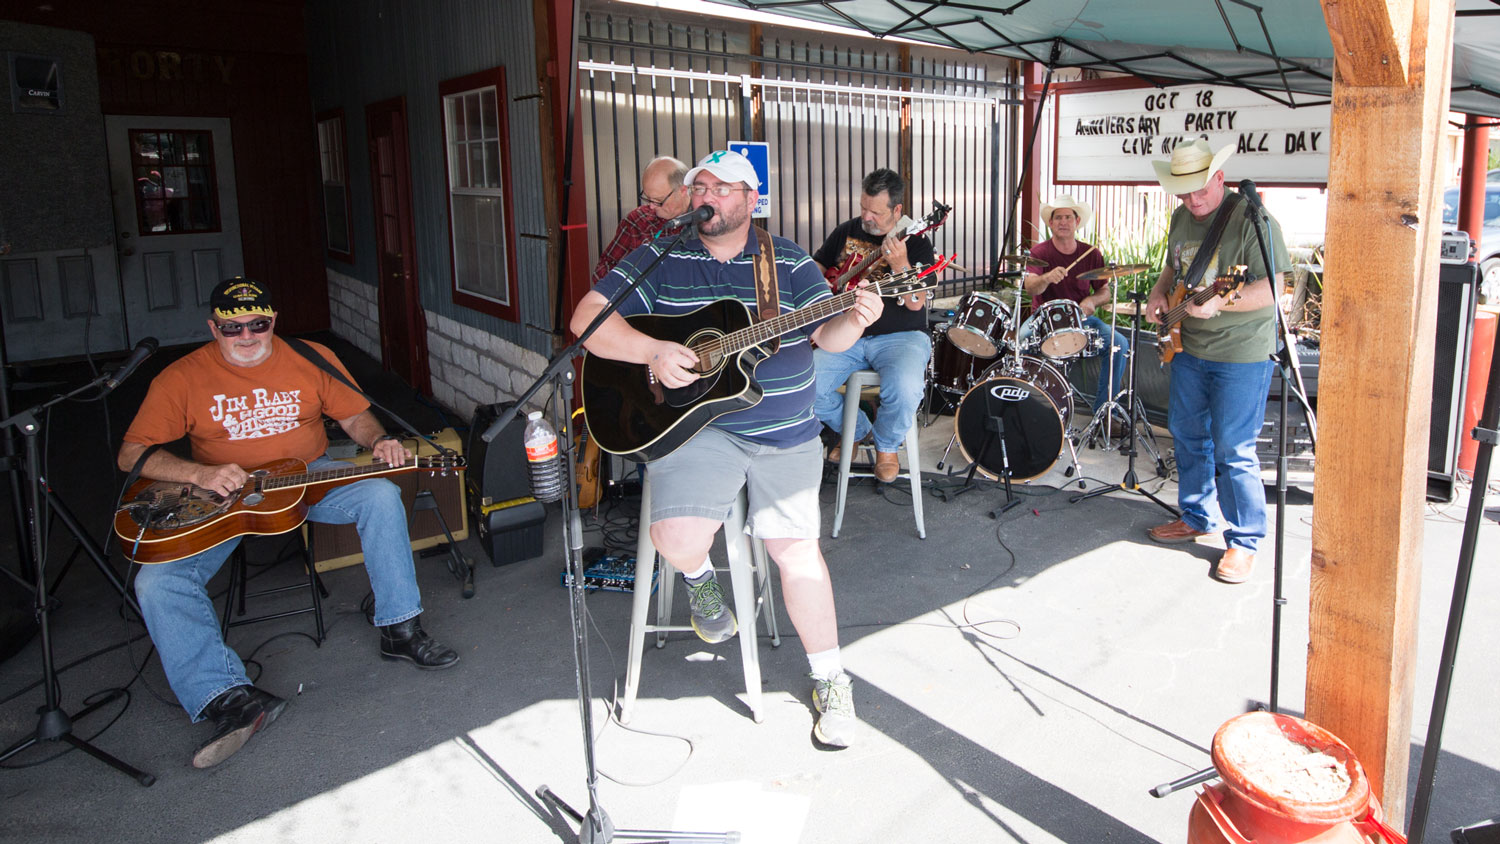 A live banc performs on the front porch at Old 300 BBQ